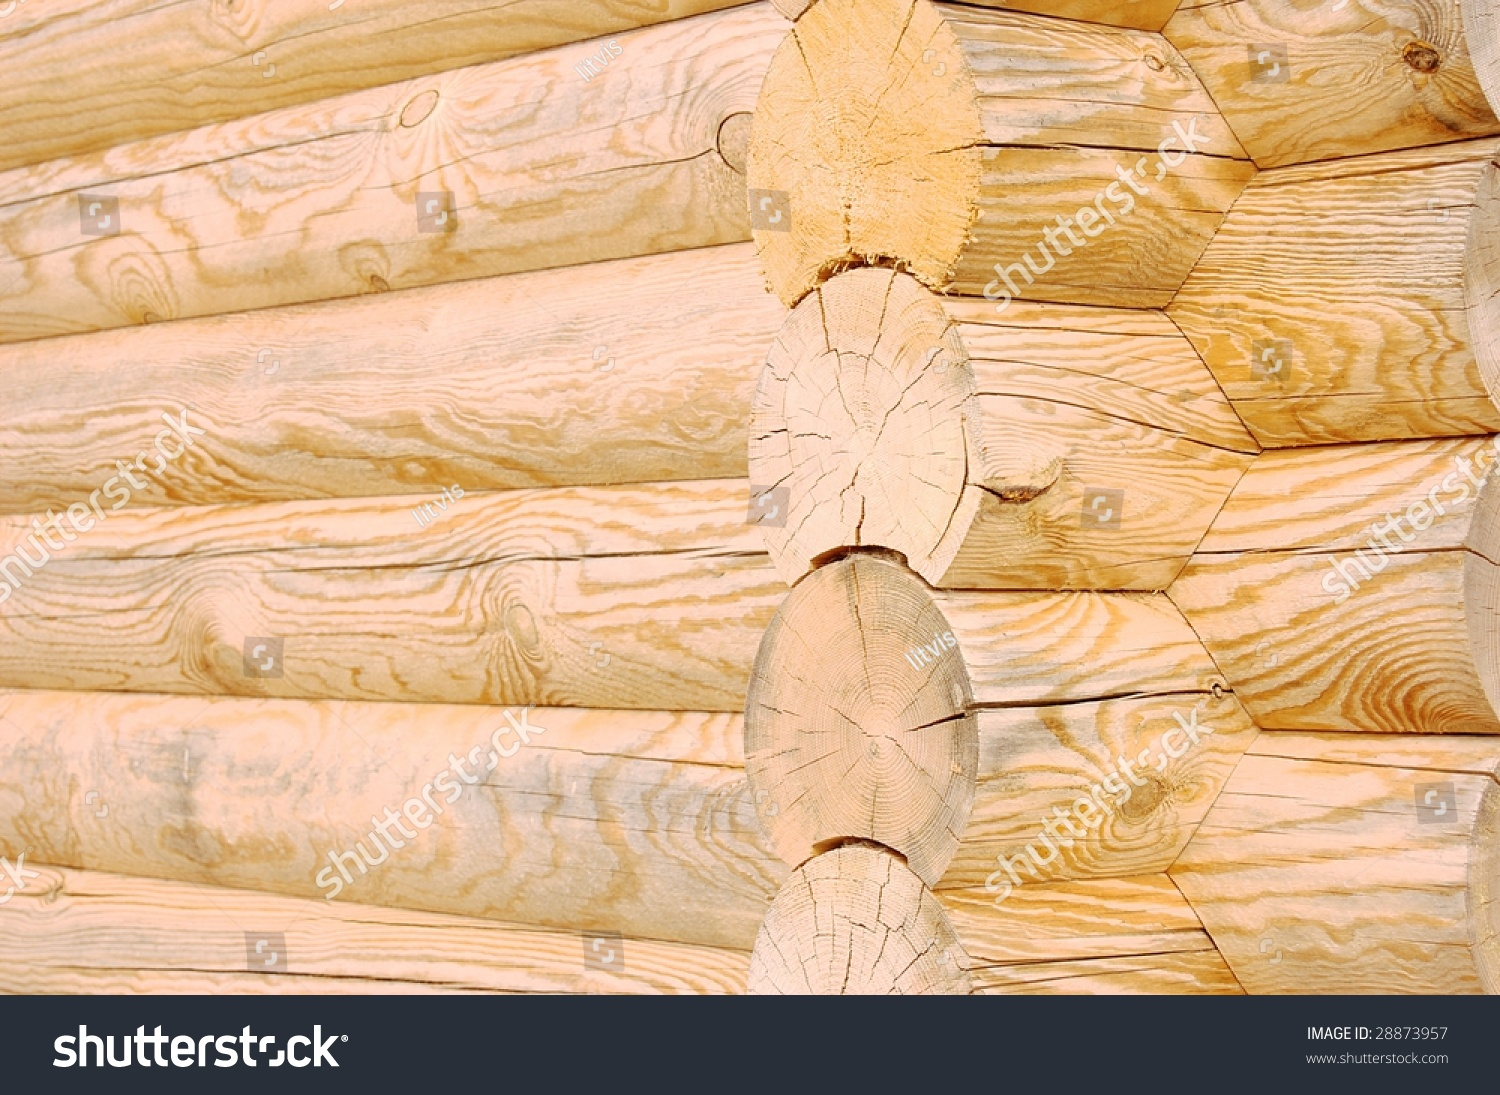 Texture Wall Made Wooden Logs Stock Photo (Edit Now) 28873957 ...